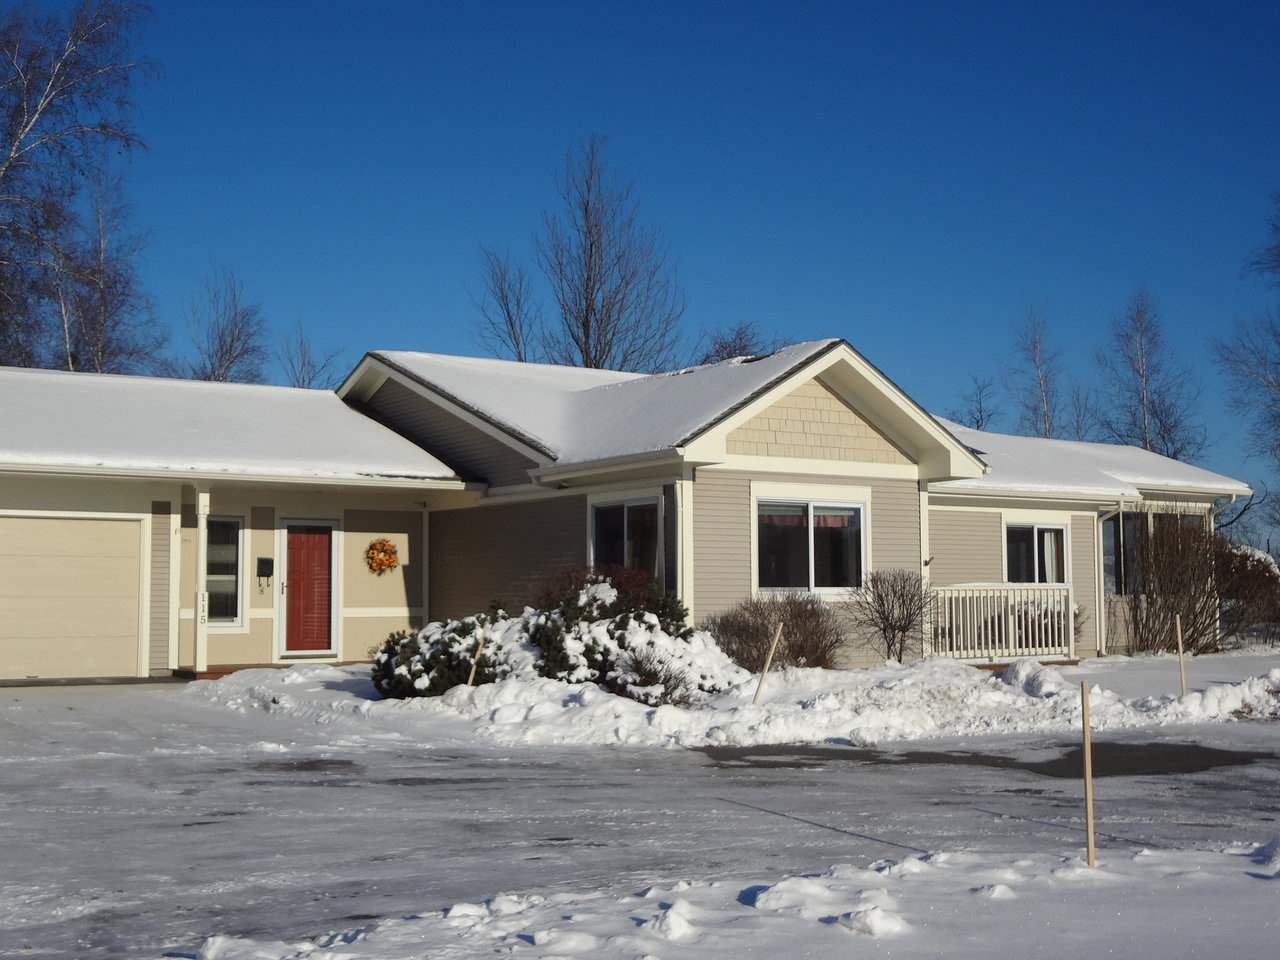 Sold property in Williston